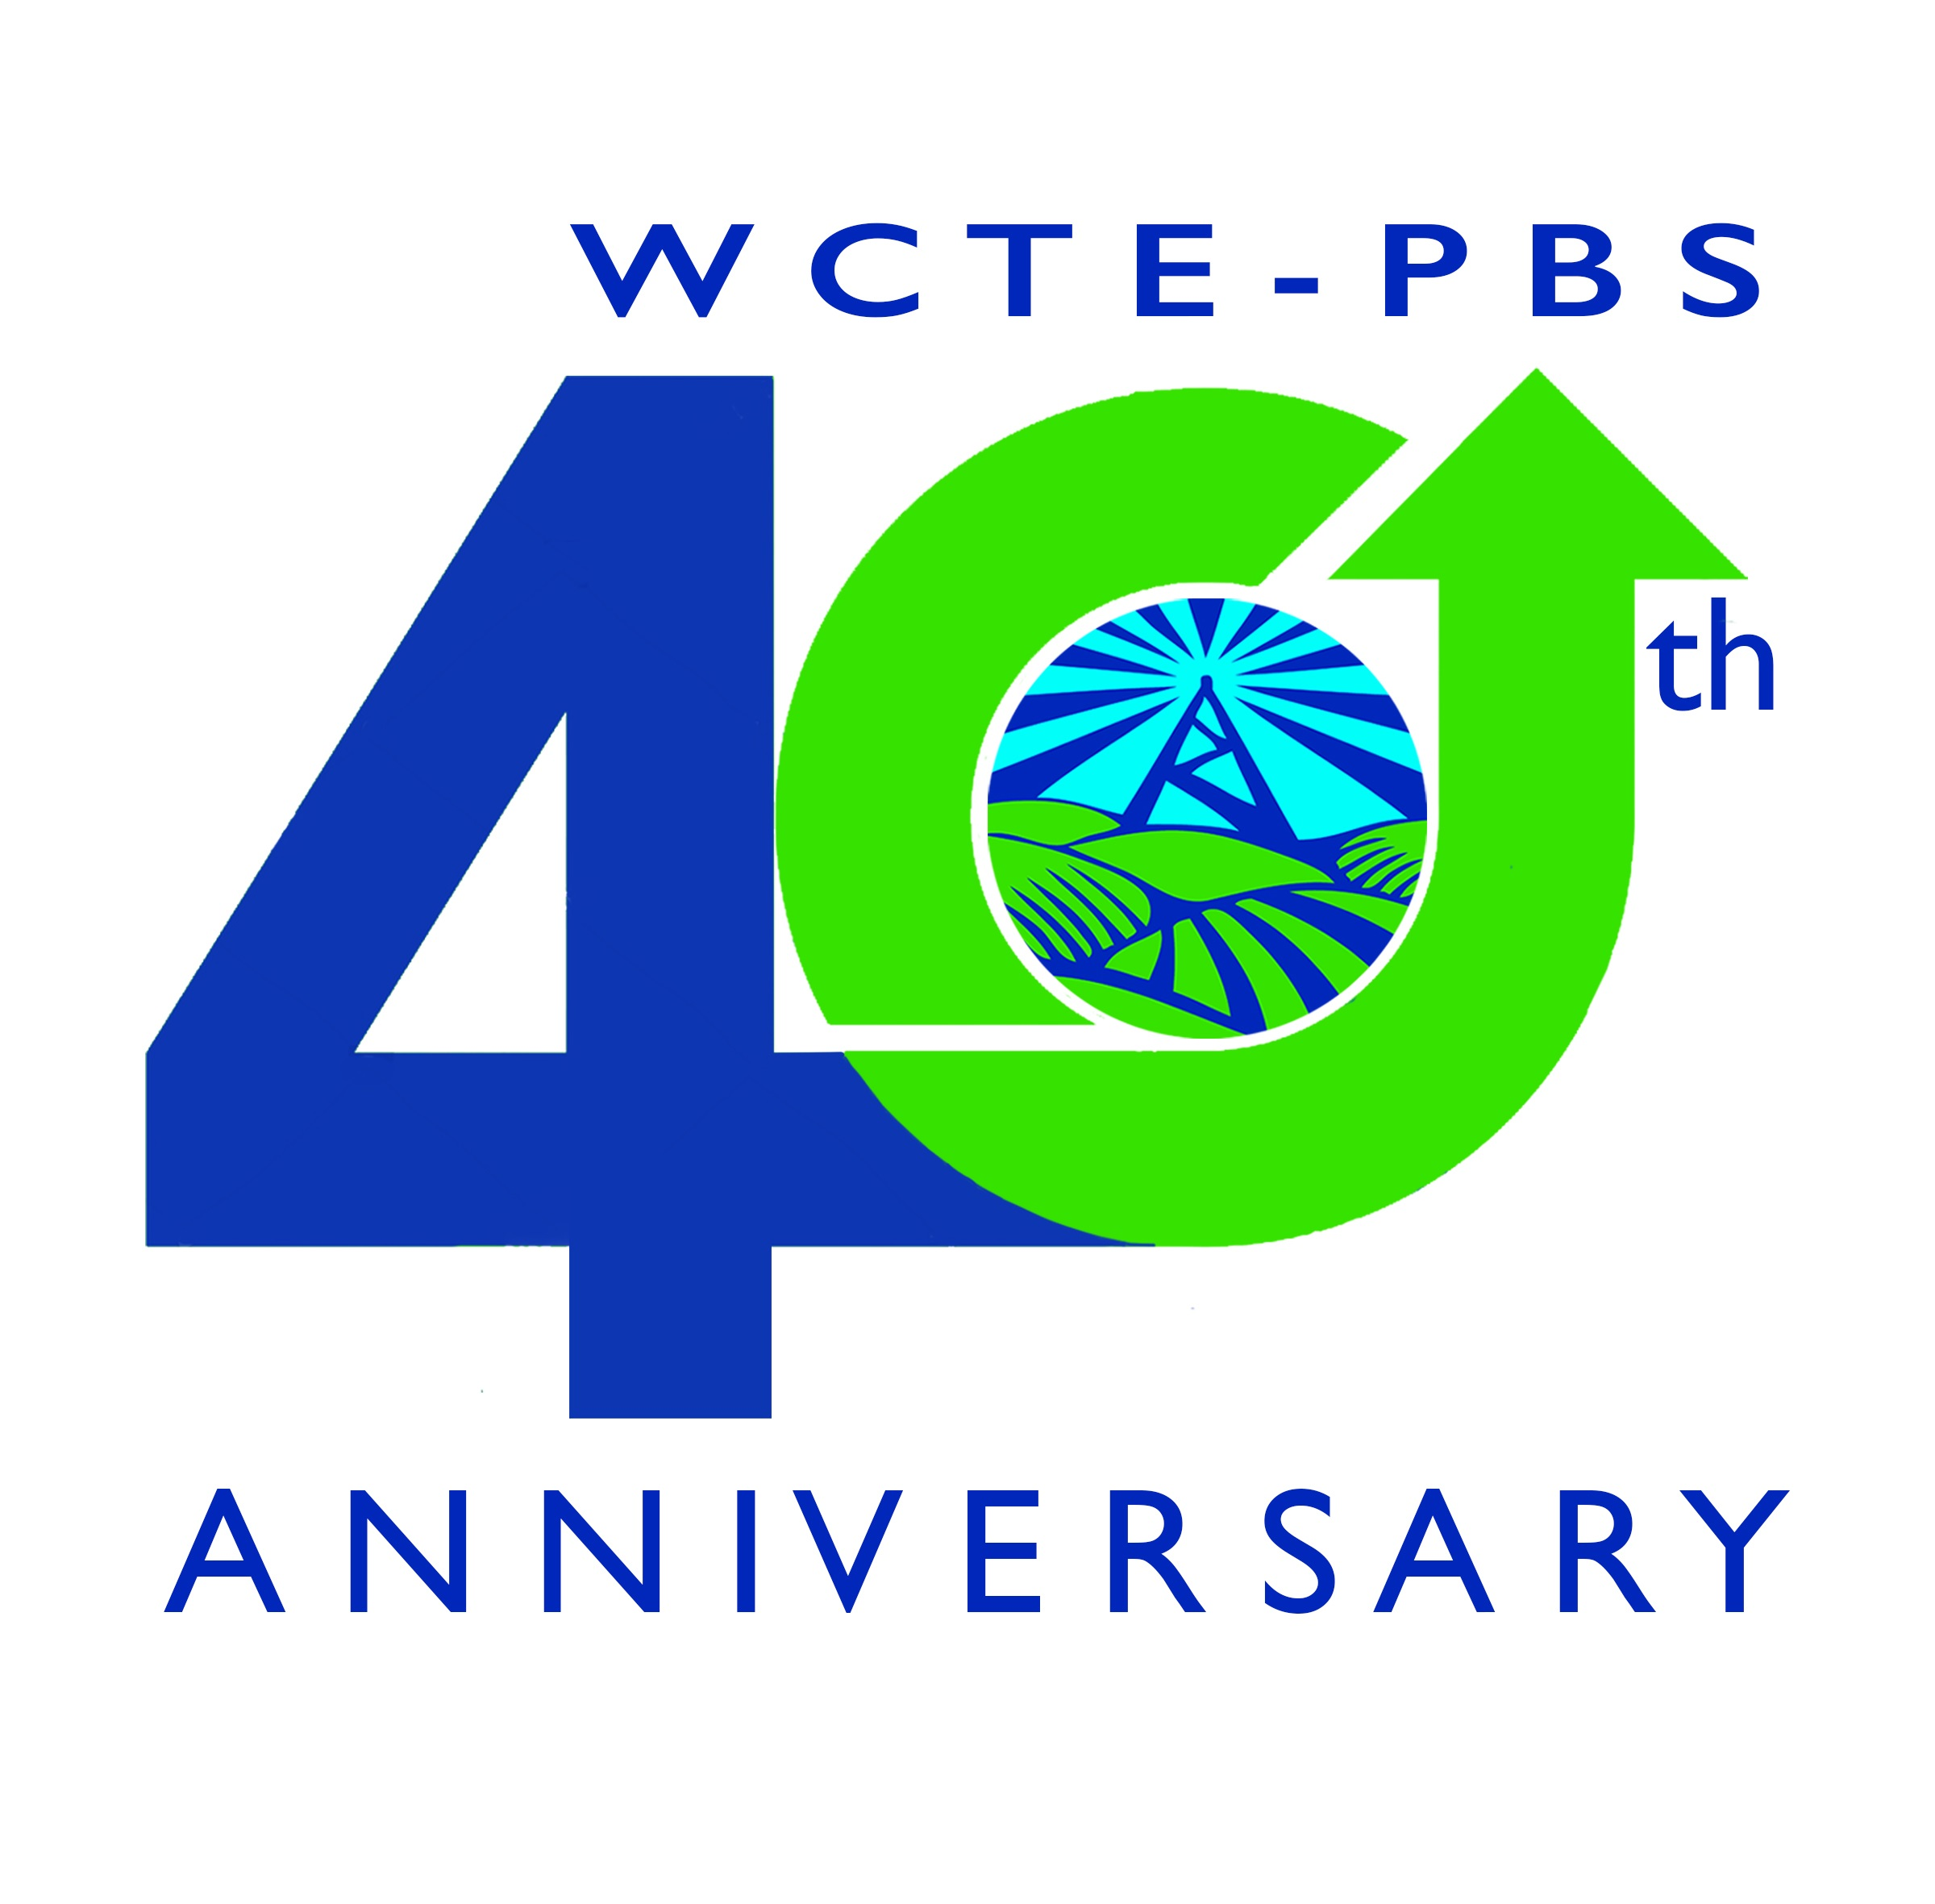 WCTE's 40th Anniversary Endowment Campaign